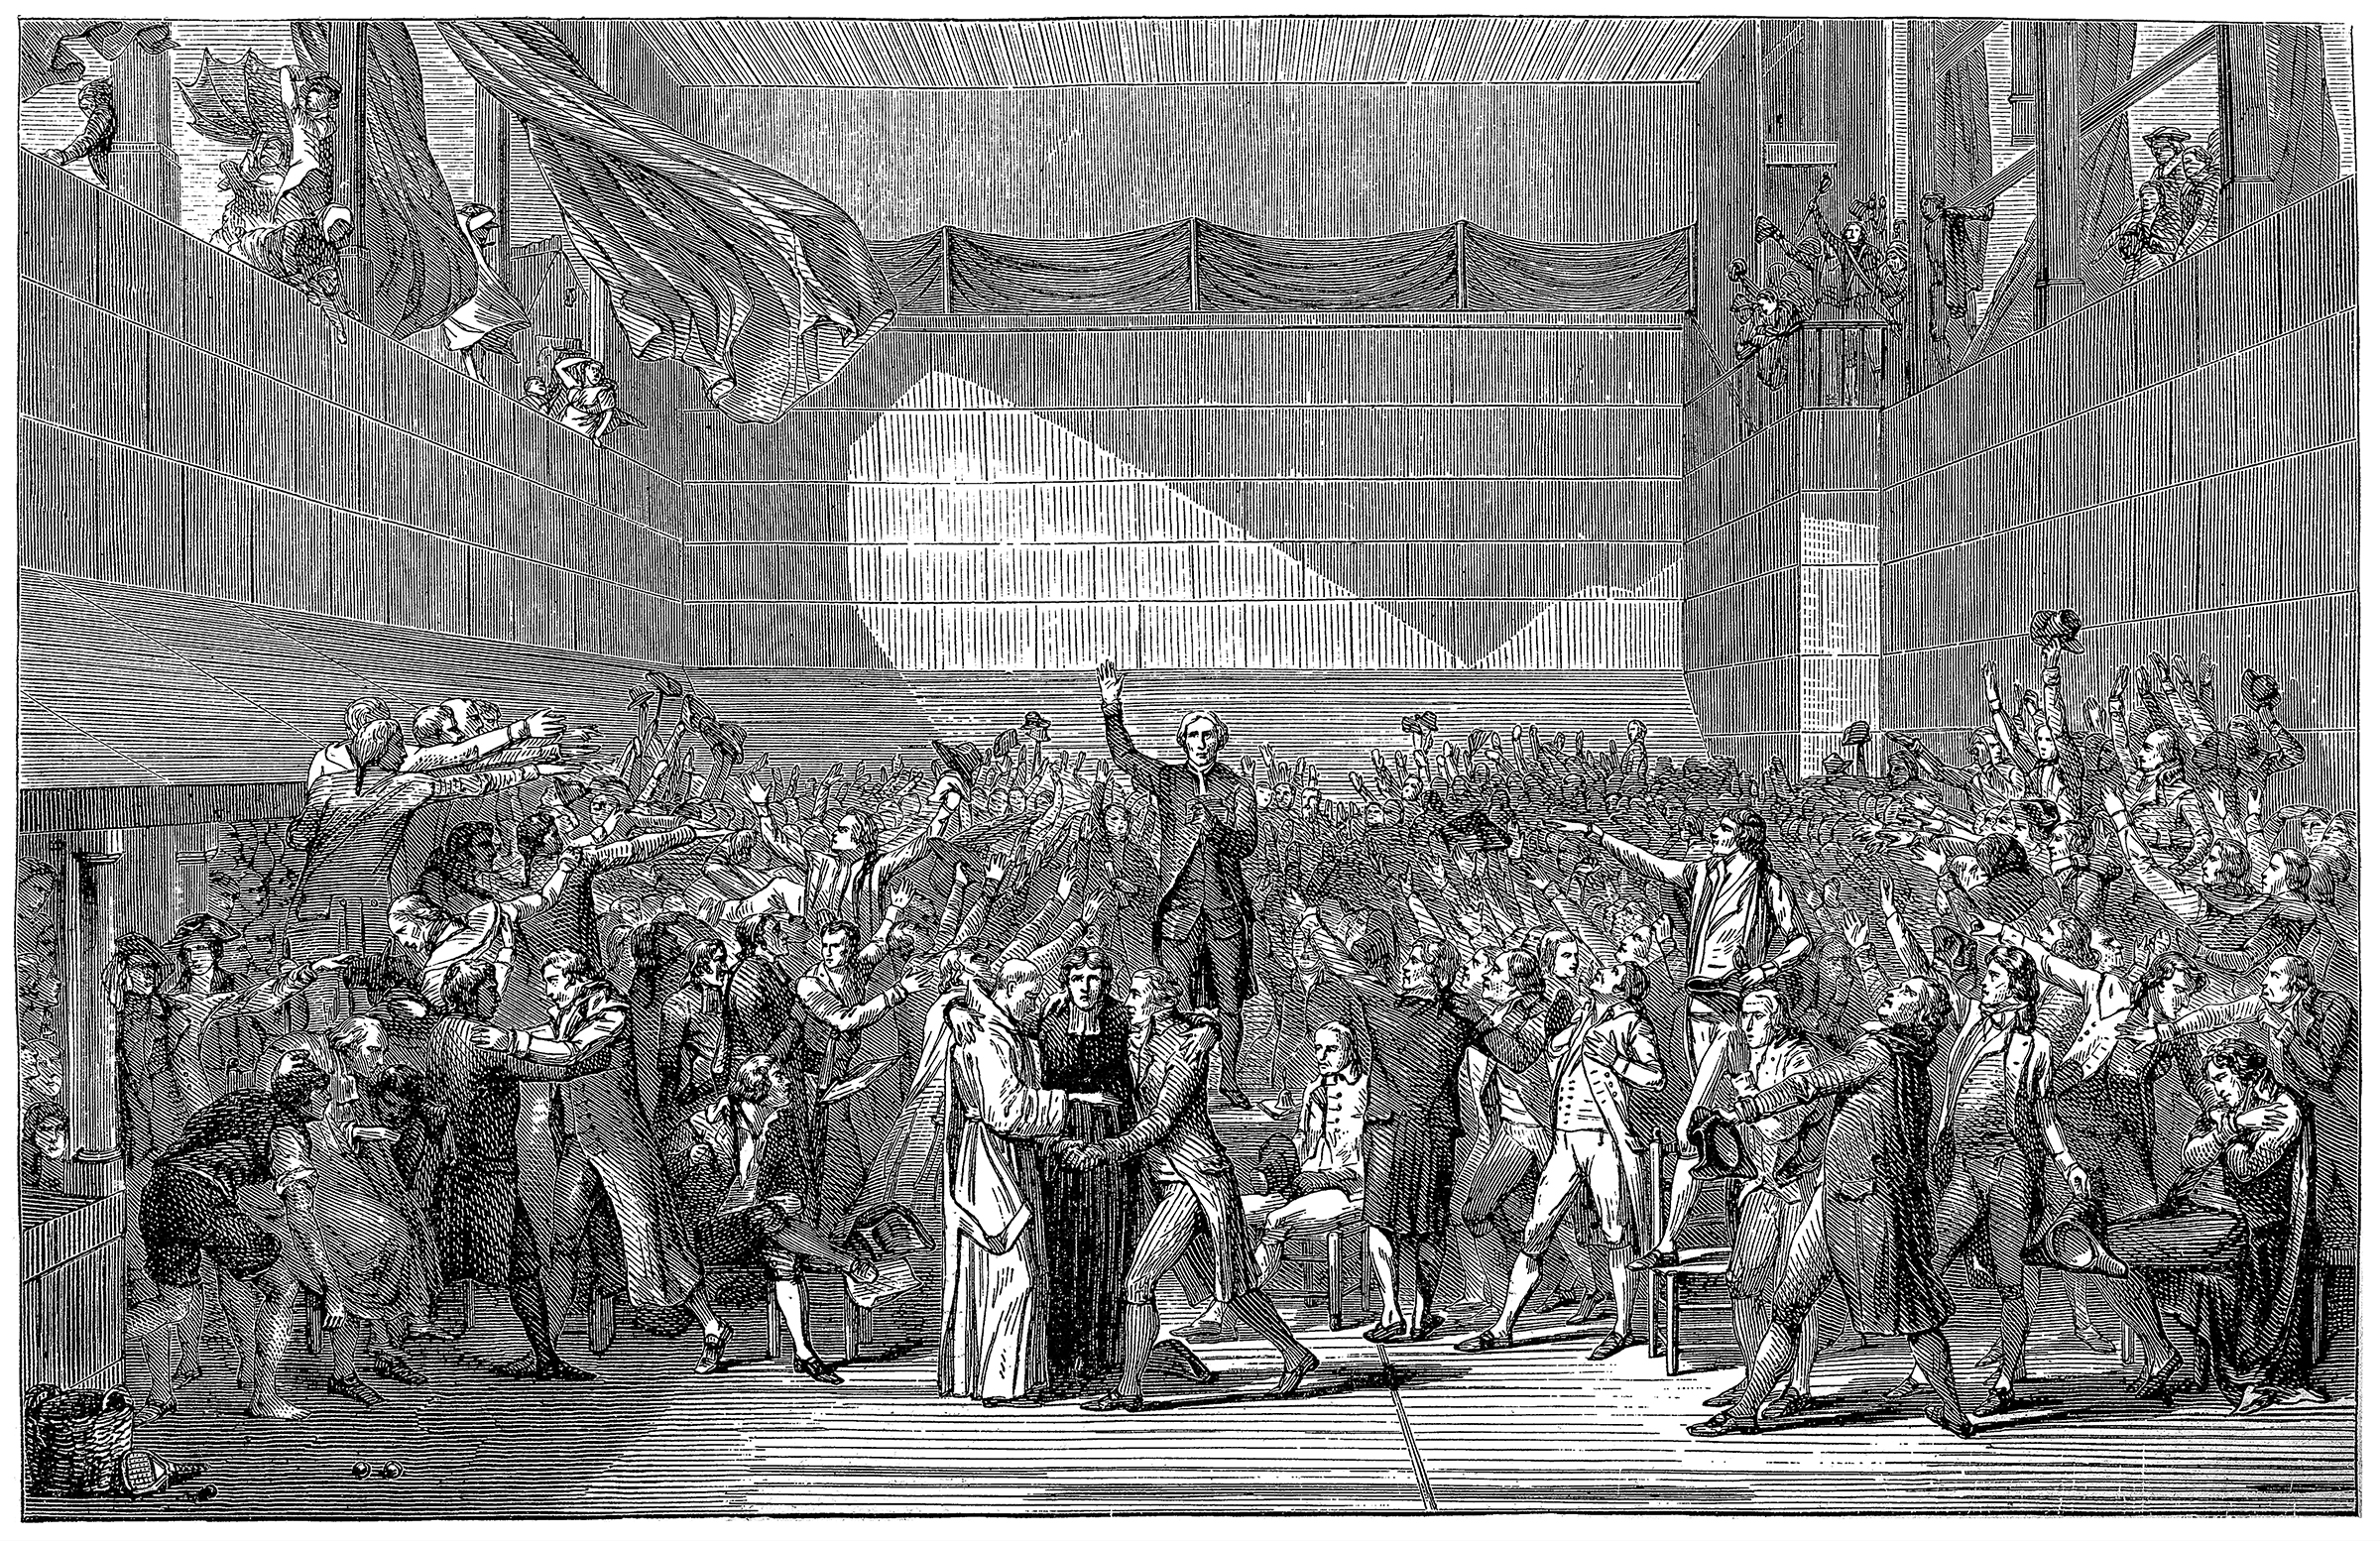 Illustration of a Revolution. 20th June, 1789. The meeting of the deputies of the National Assembly during the signing of the Tennis Court Oath, in Versailles.